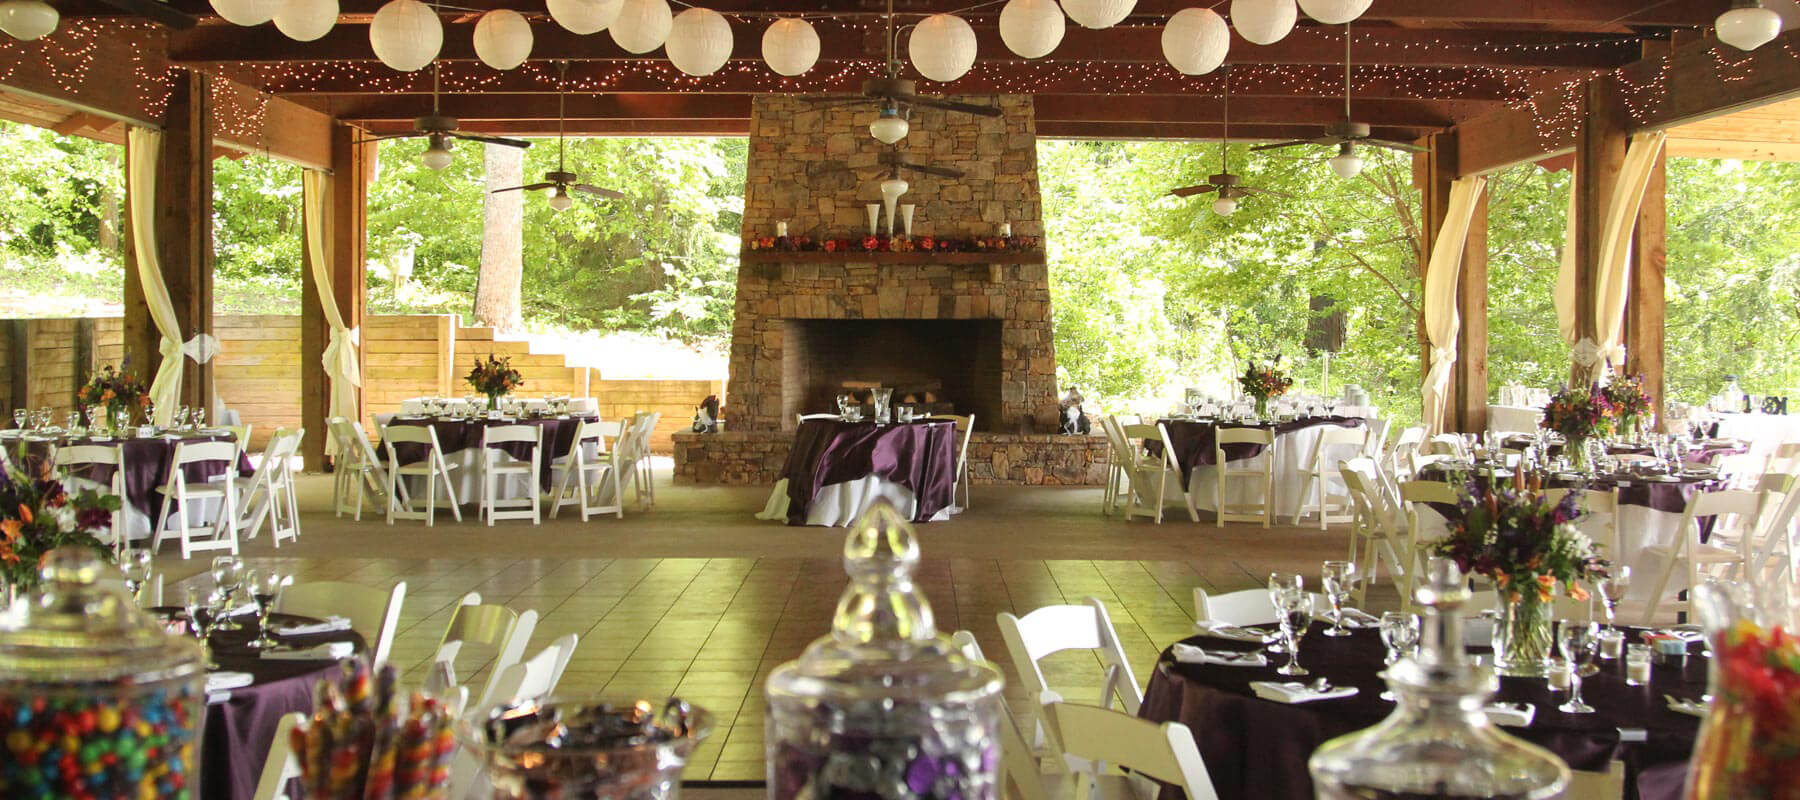 Brtown Valley Wedding Venues In Georgia Sunset Pavilion